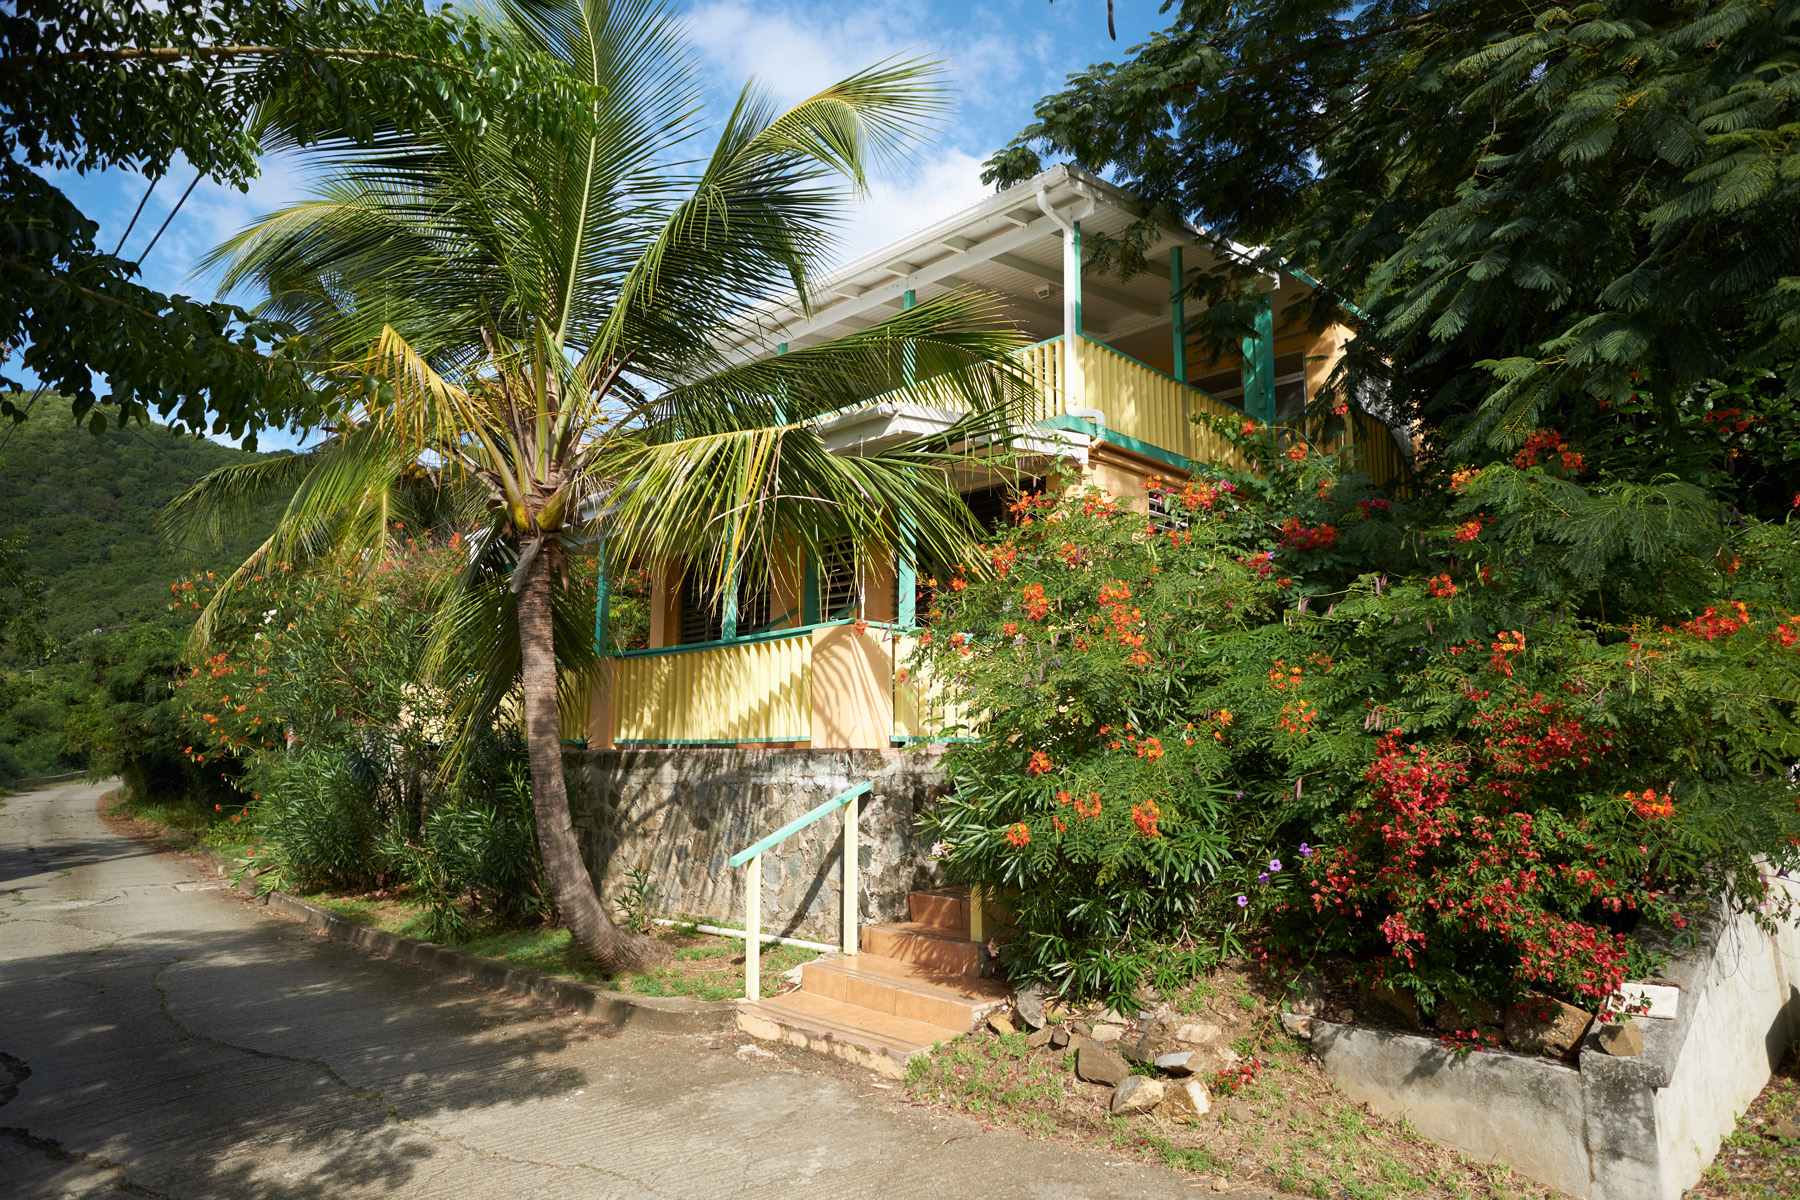 Maison unifamiliale pour l Vente à West Haven House West End, Tortola Iles Vierges Britanniques